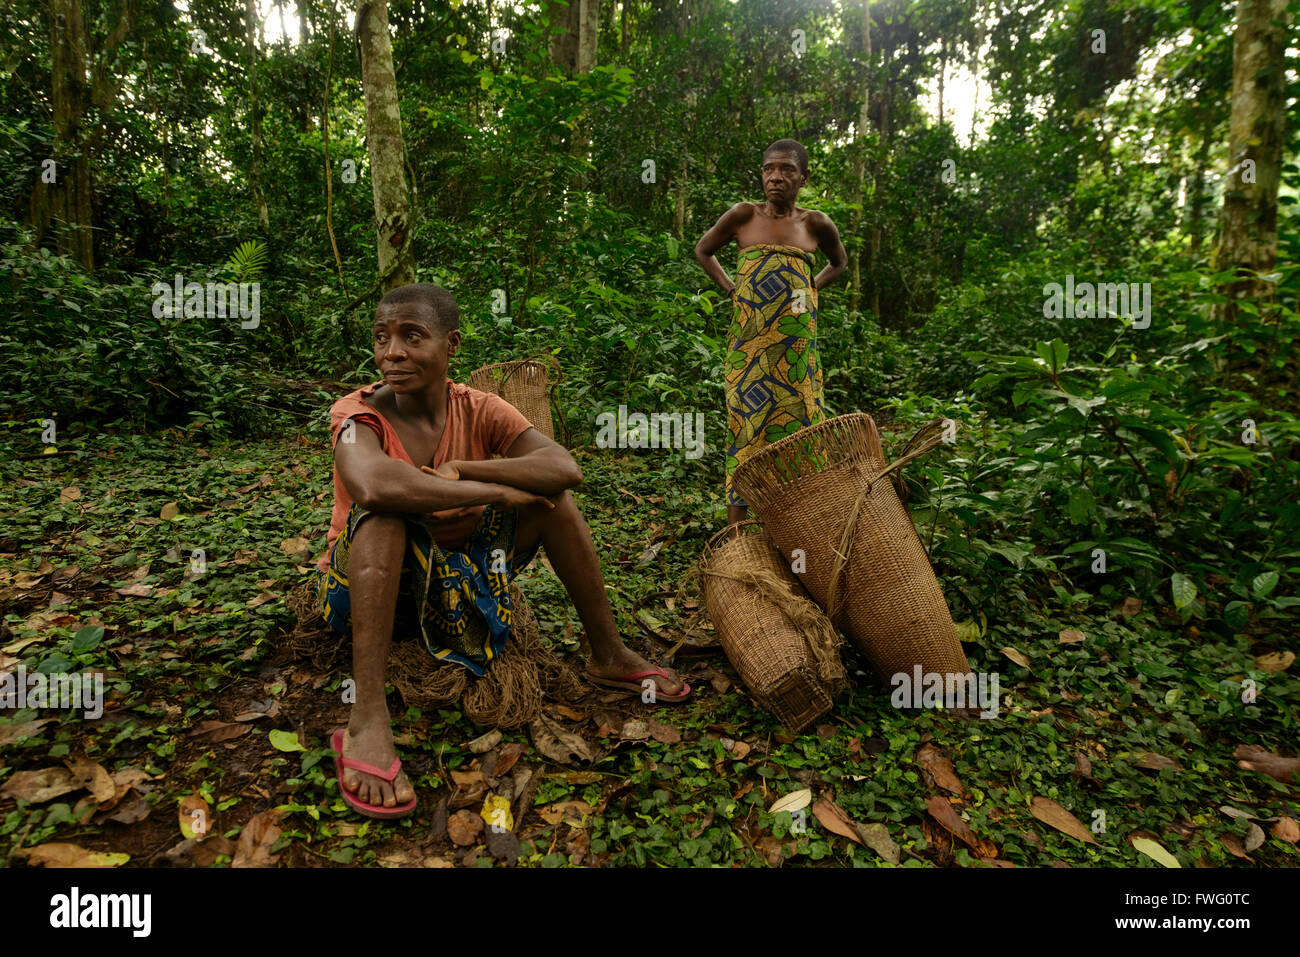 Bayaka Pygmies In The Equatorial Rainforest Central African Republic Africa